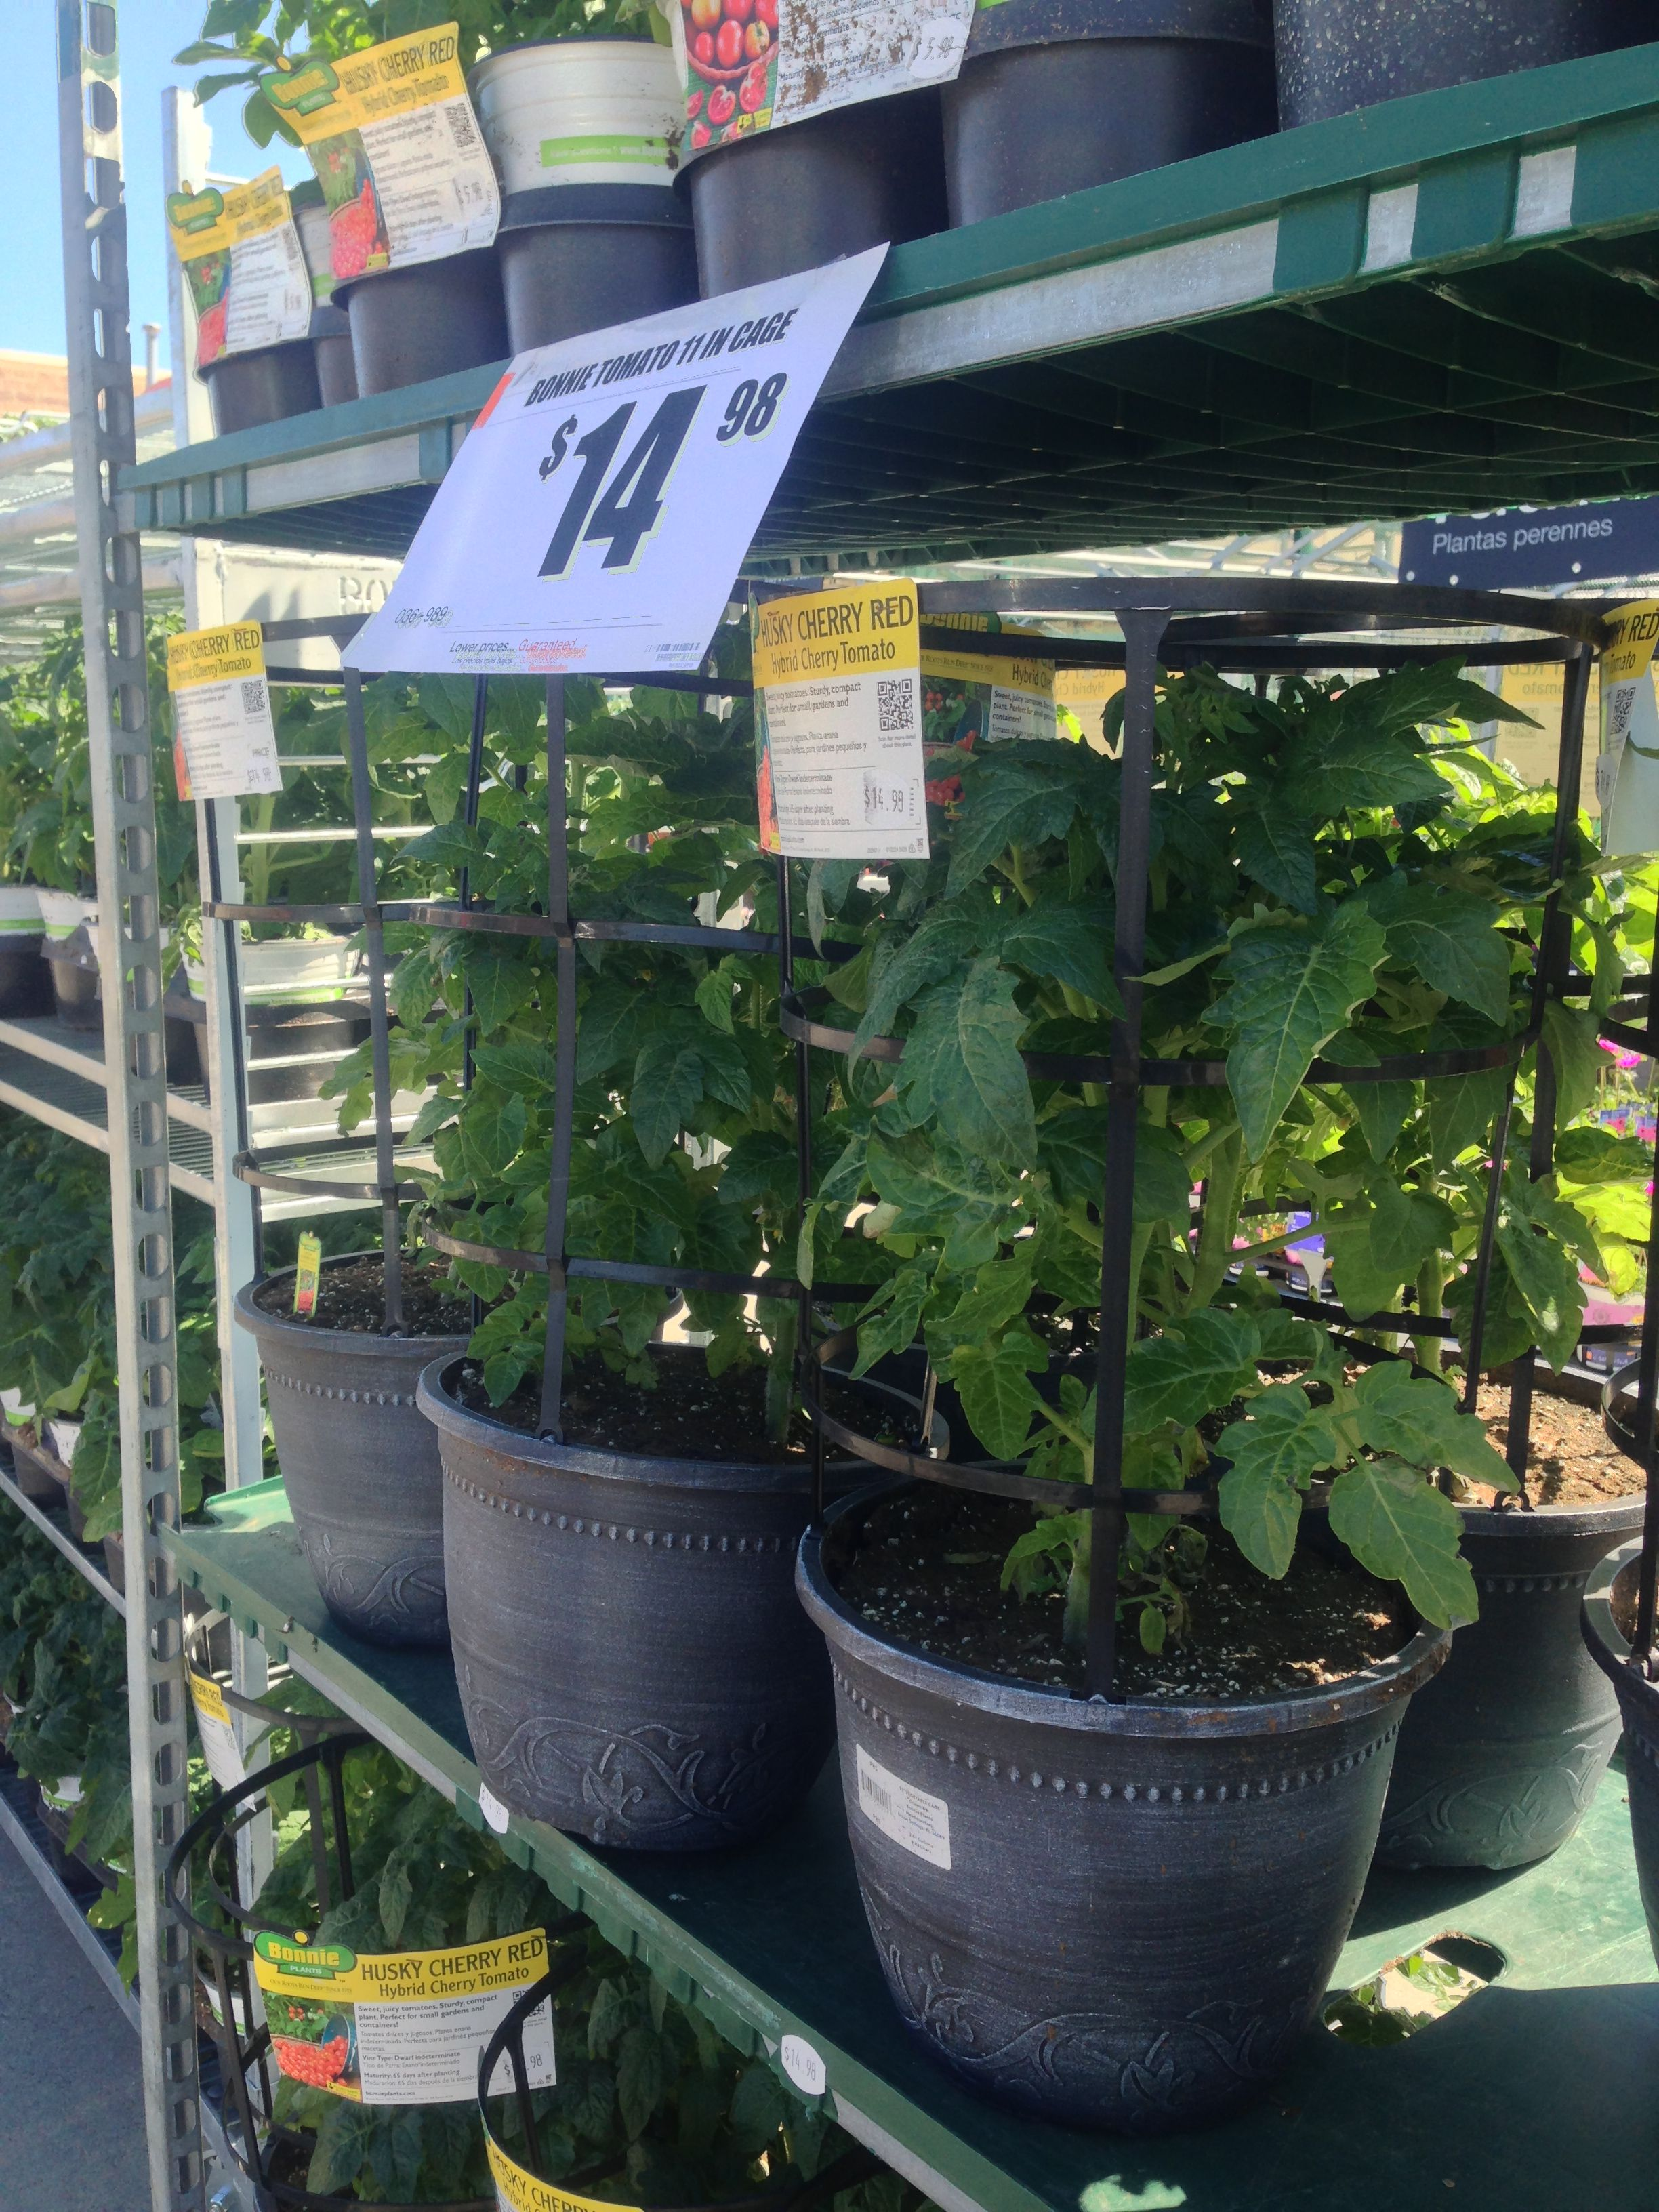 Getting Excited For Summer Bonnie Tomato Plants In Our 400 x 300